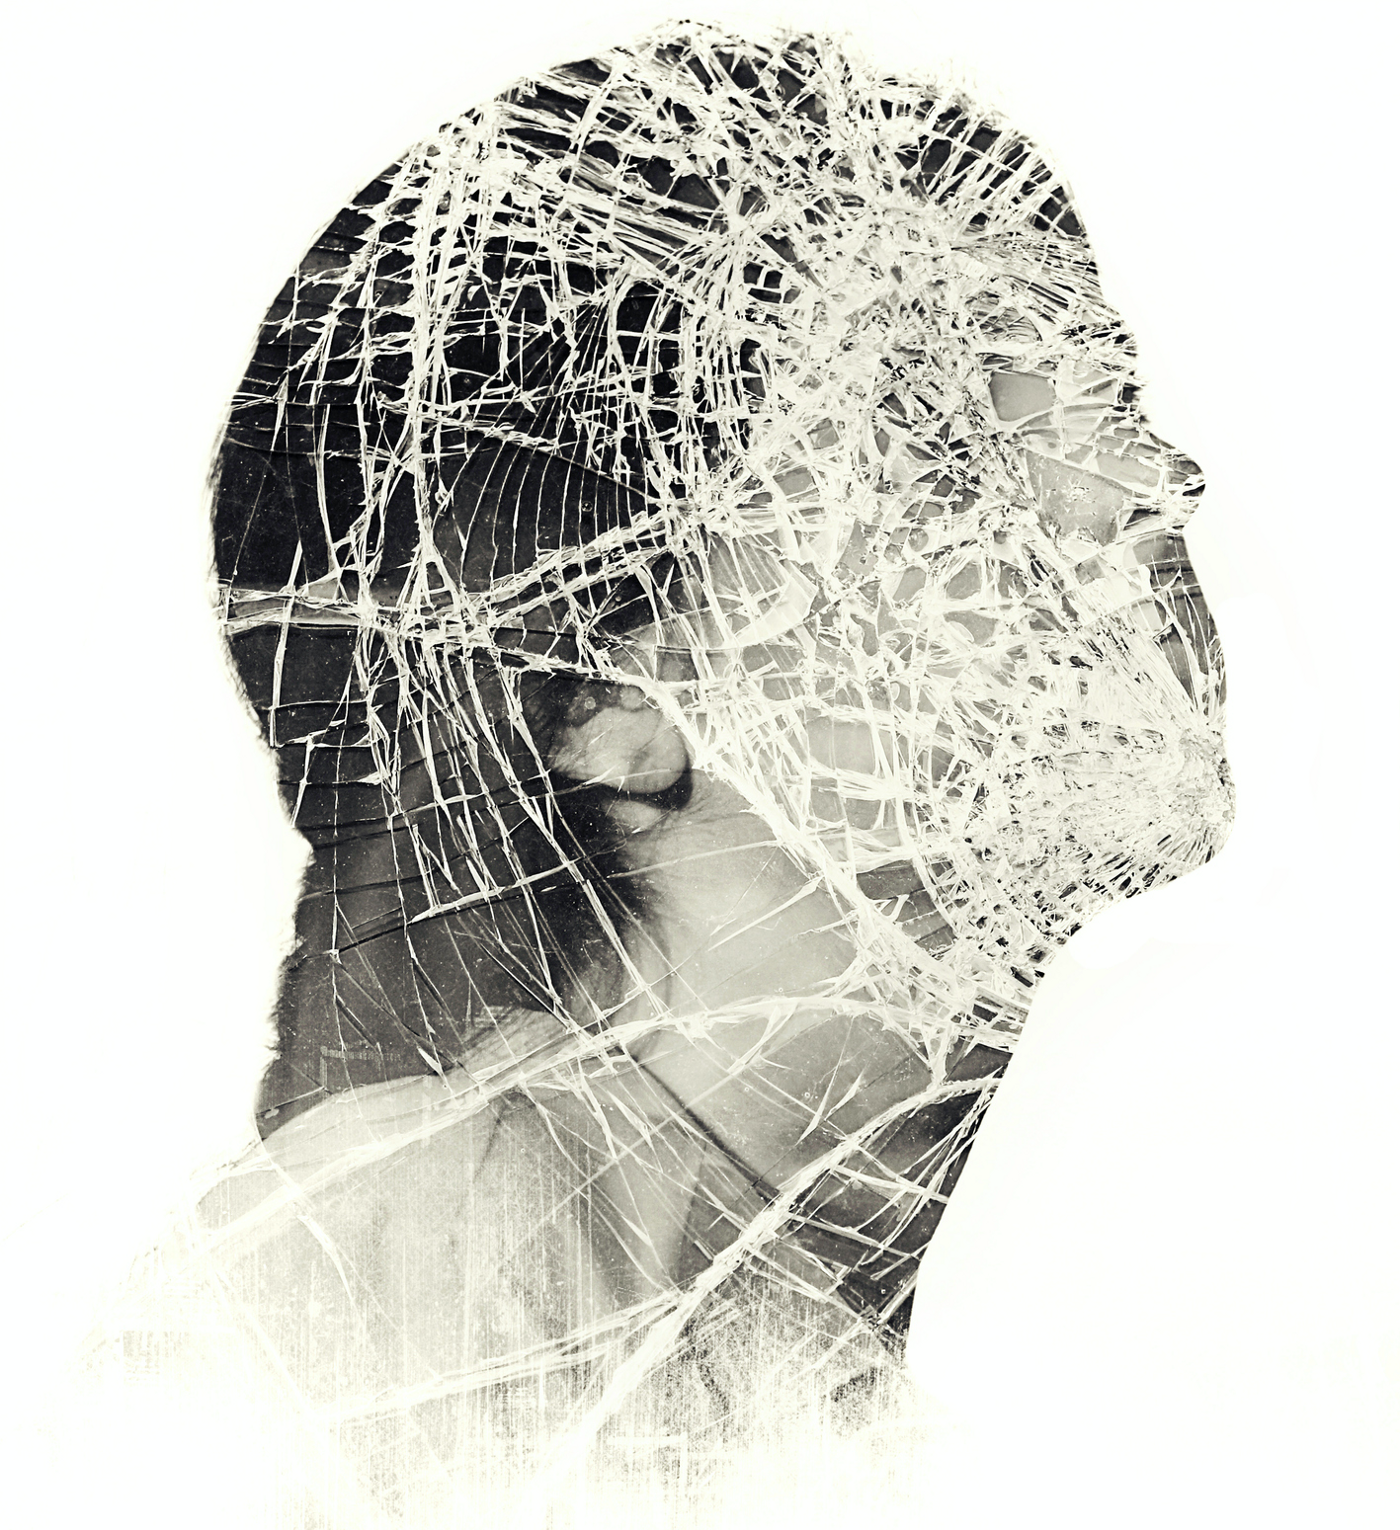 A multiple exposure photo of a woman's face that appears to be shattered.